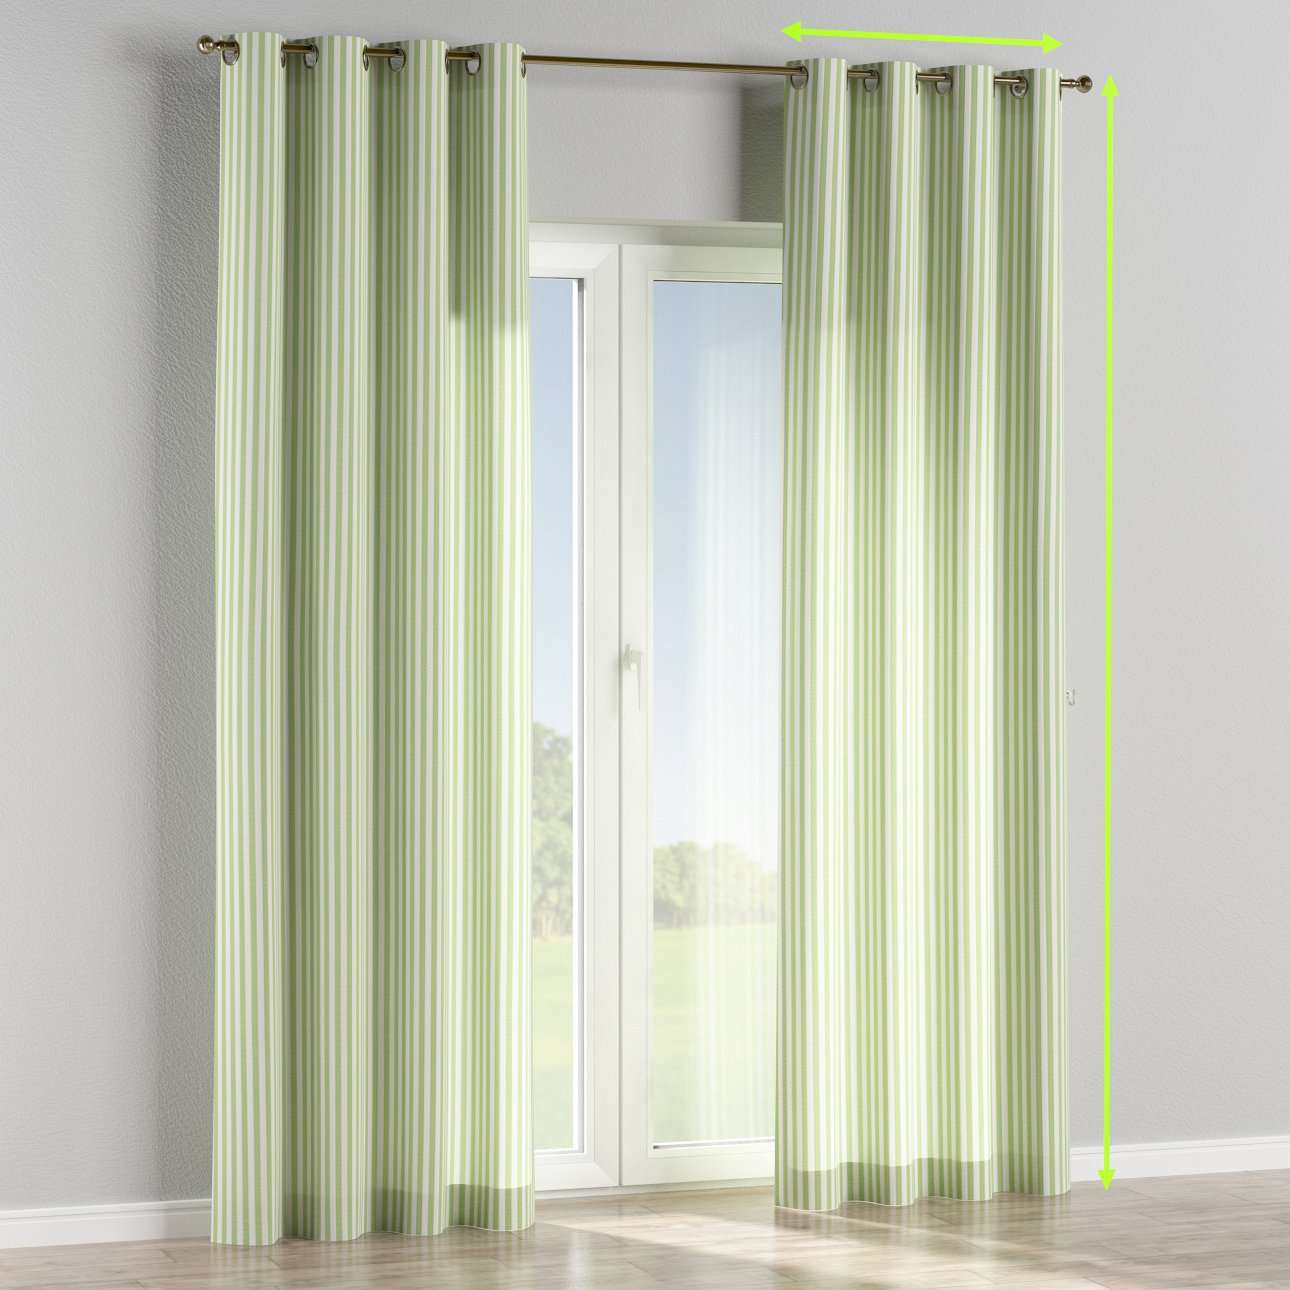 Eyelet curtains in collection Quadro, fabric: 136-35